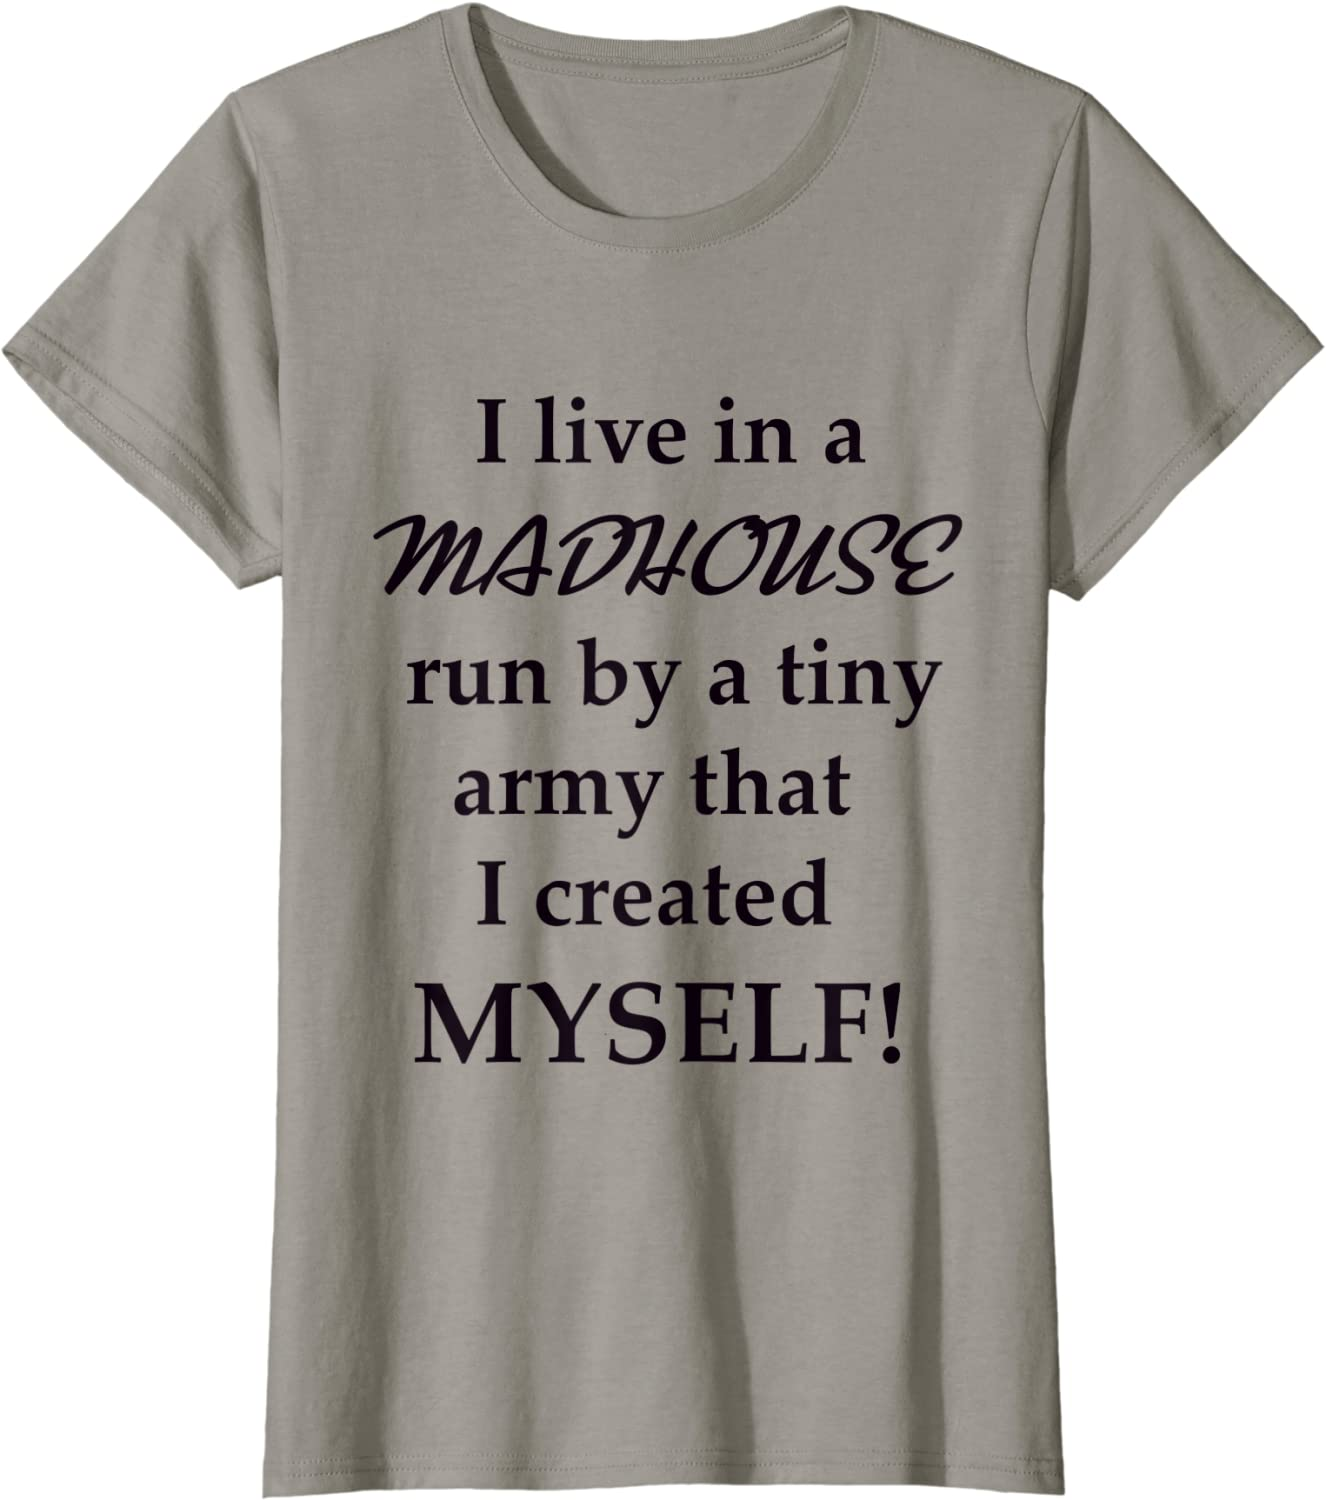 DAYPLAY Mothers Day Tee Shirts for Women with Sayings I Live in a Madhouse Run by a Tiny Army I Made Myself Womens Tops